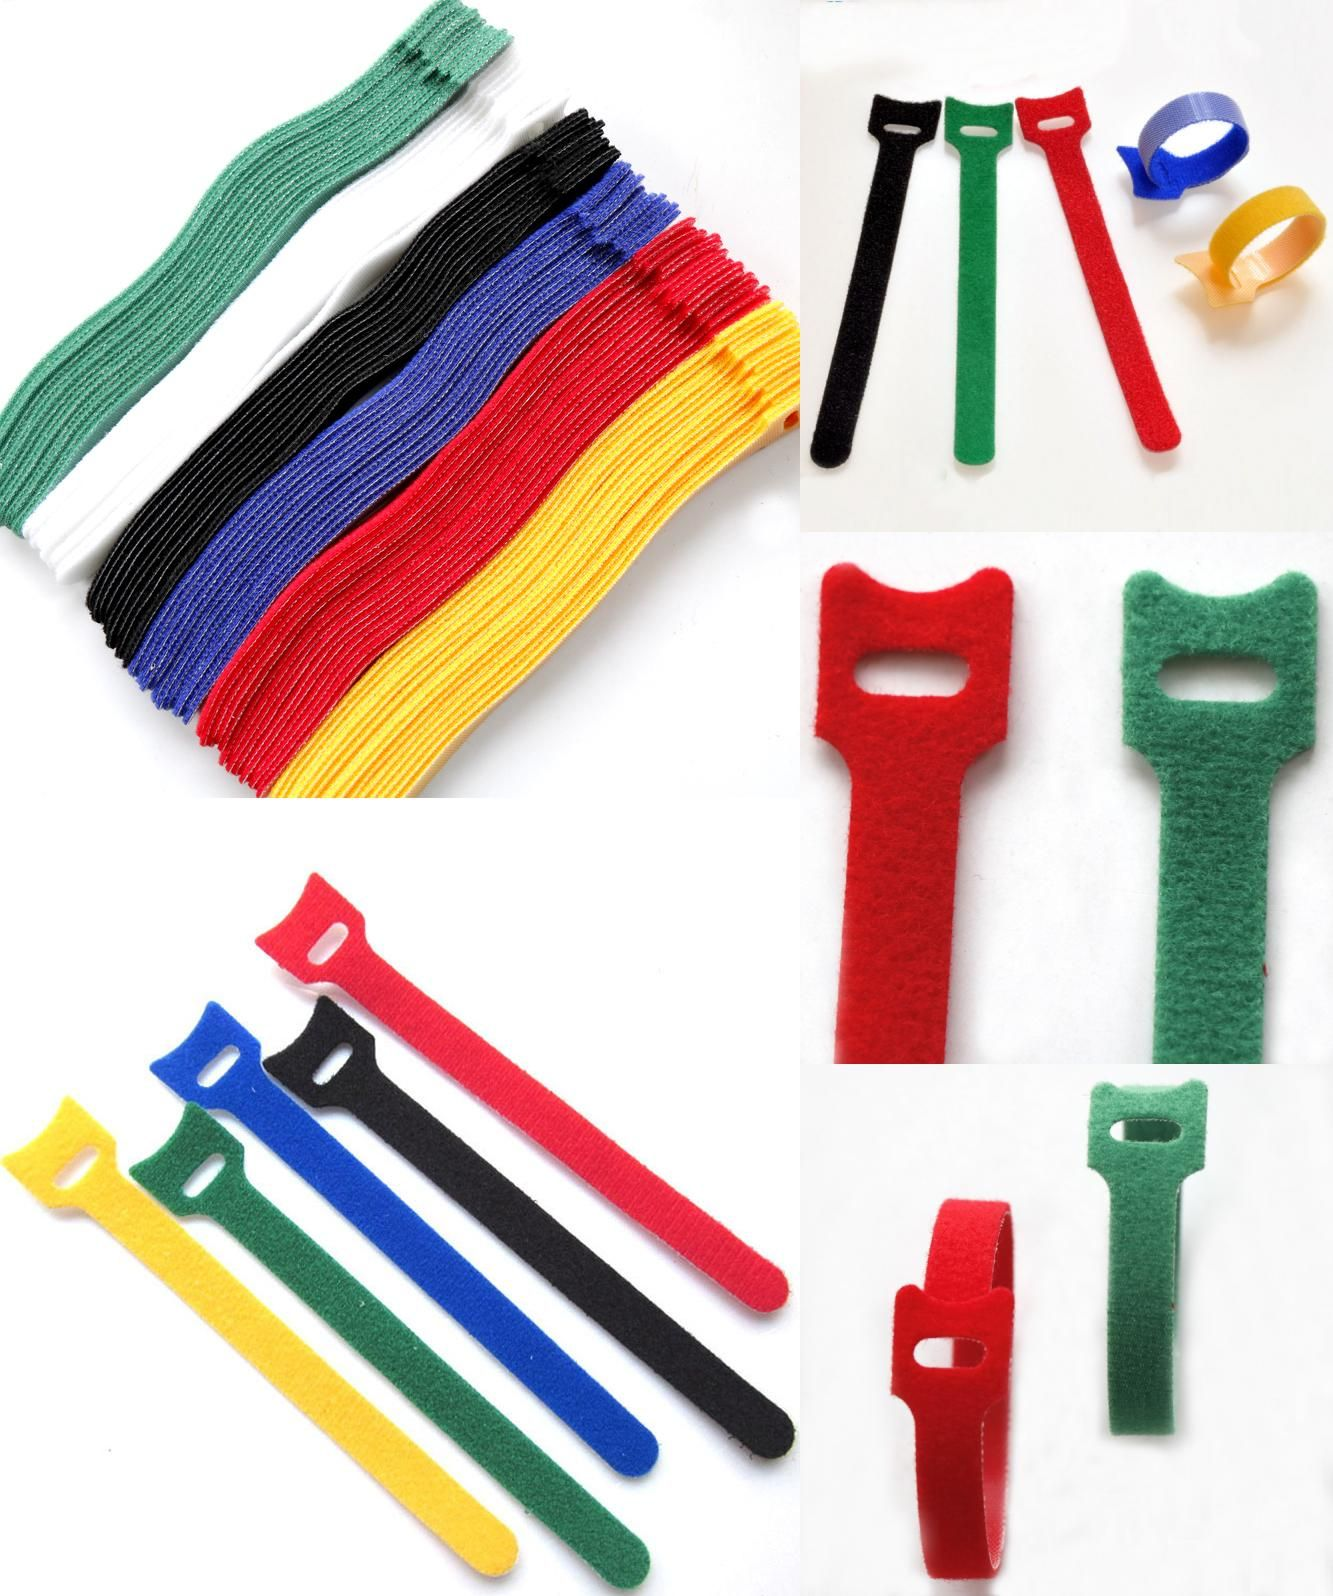 medium resolution of  visit to buy in stock 30pcs lot 12mmx200mm cable ties nylon strap power wire management marker straps wiring harness free shipping advertisement